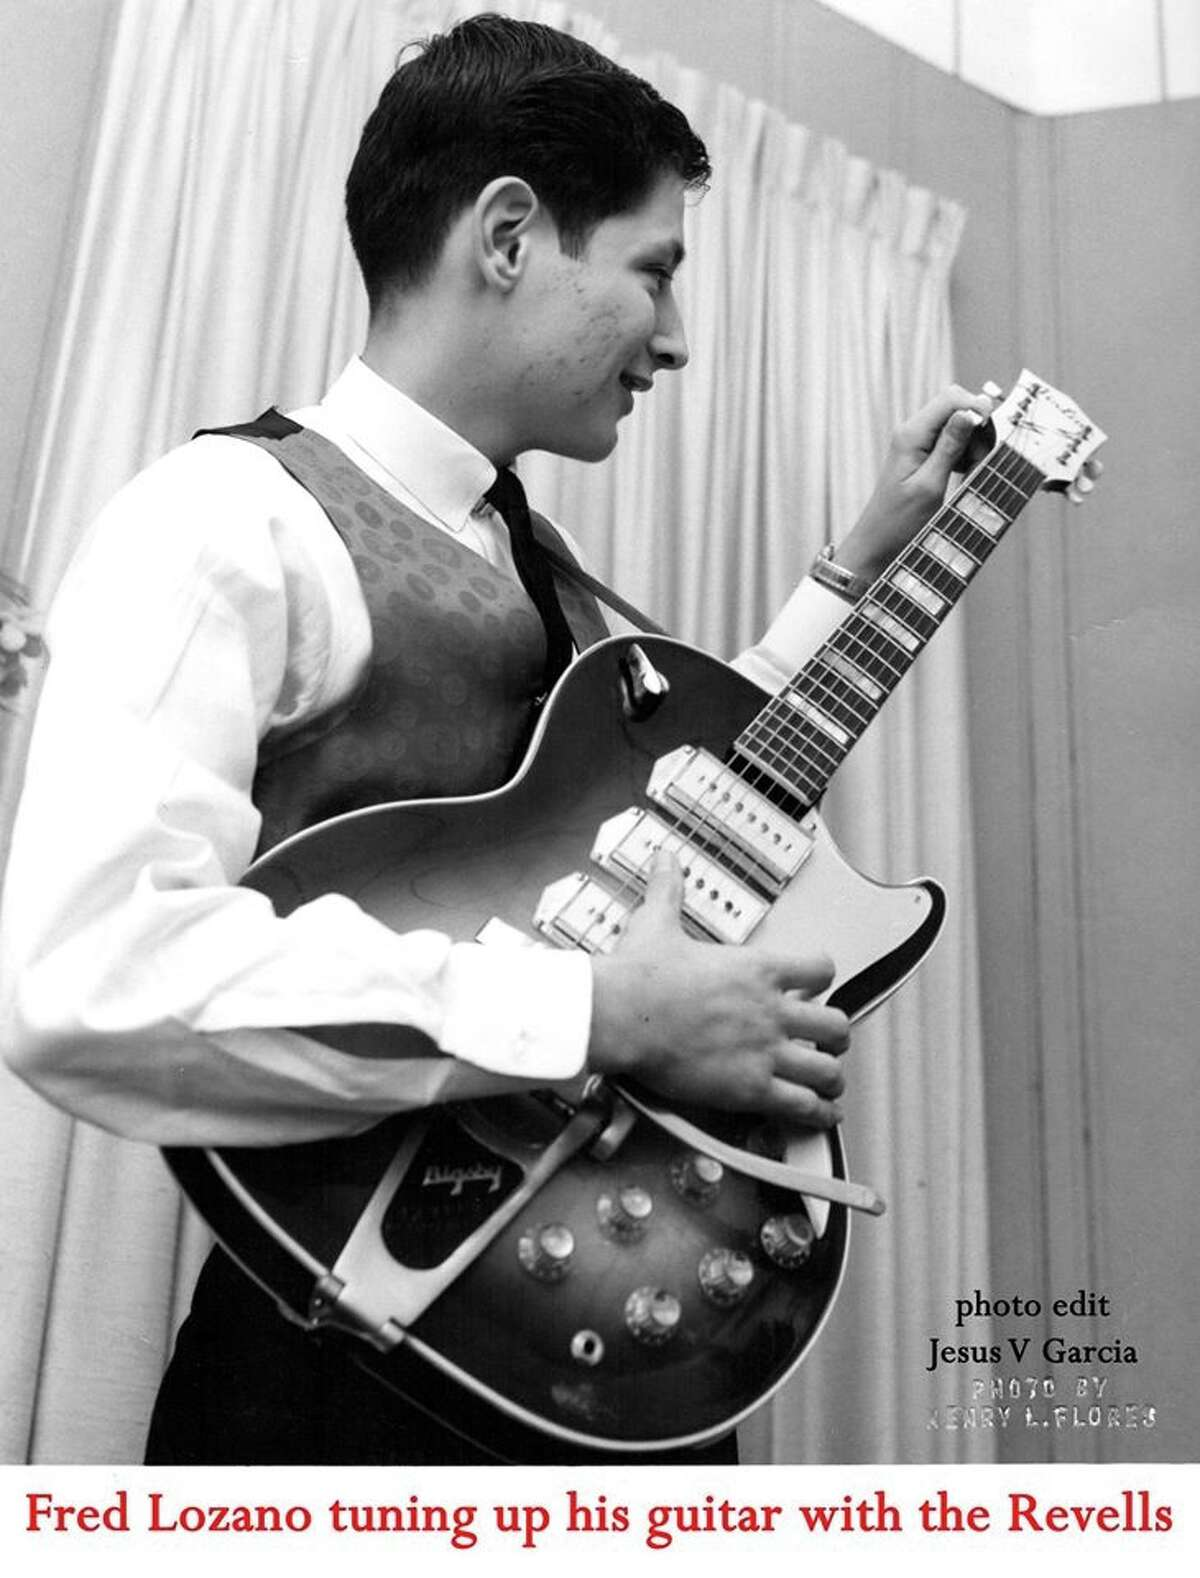 Fred Lozano played in local teen combos the Radiants, the Revells and the Eptones. He's shown tuning up his electric guitar in this photo from the mid-1960s.